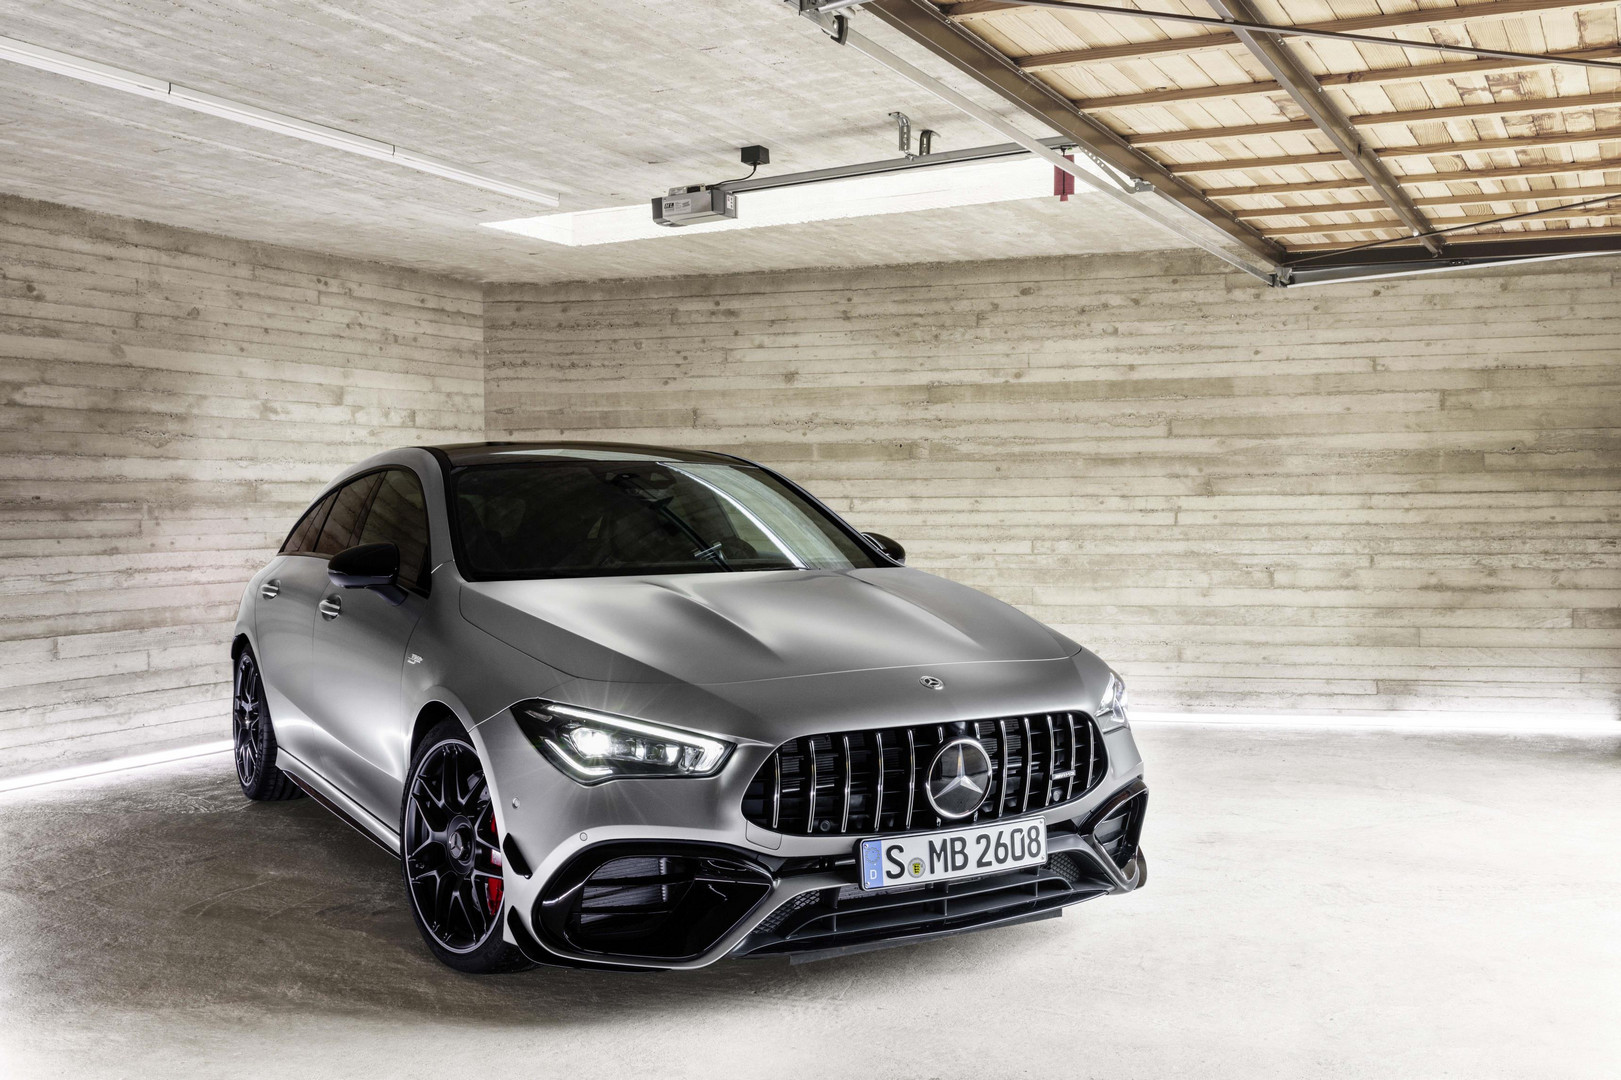 Mercedes-AMG CLA 45 S Shooting Brake Wallpaper